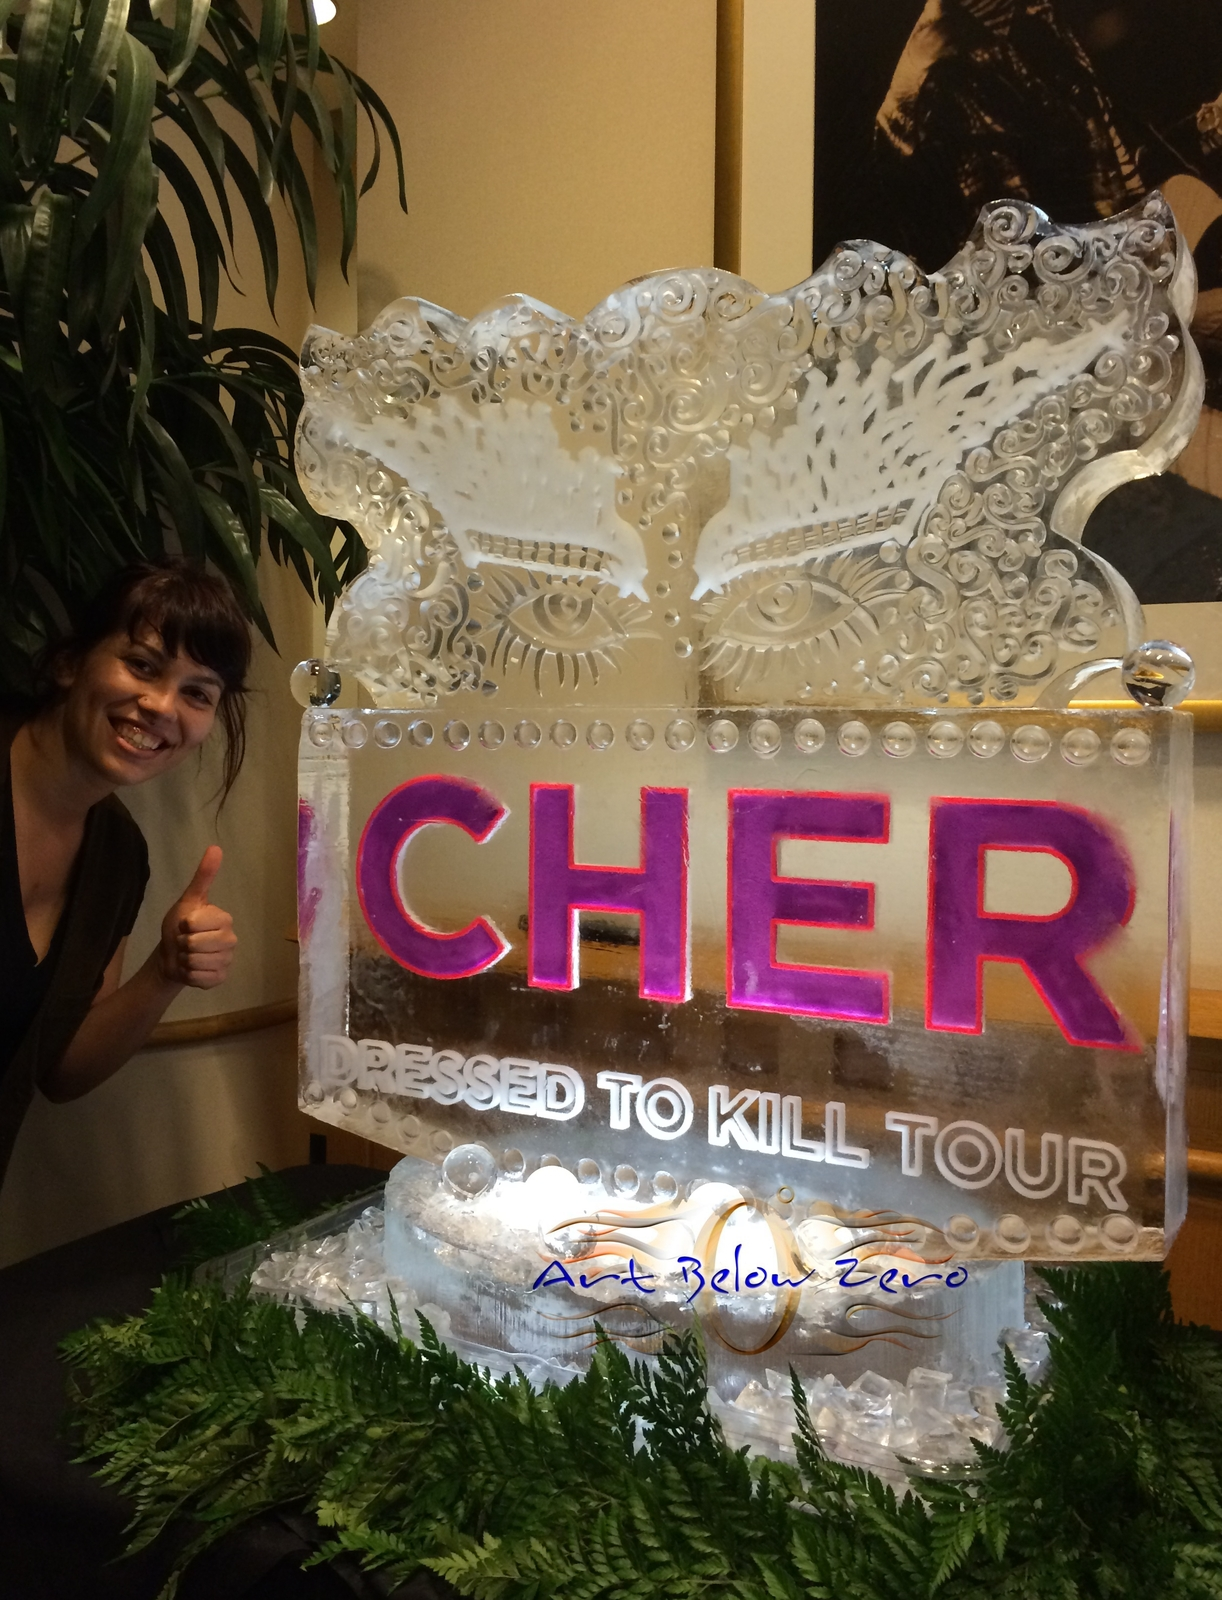 Cher_dress_to_kill_tour_ice_sculpture